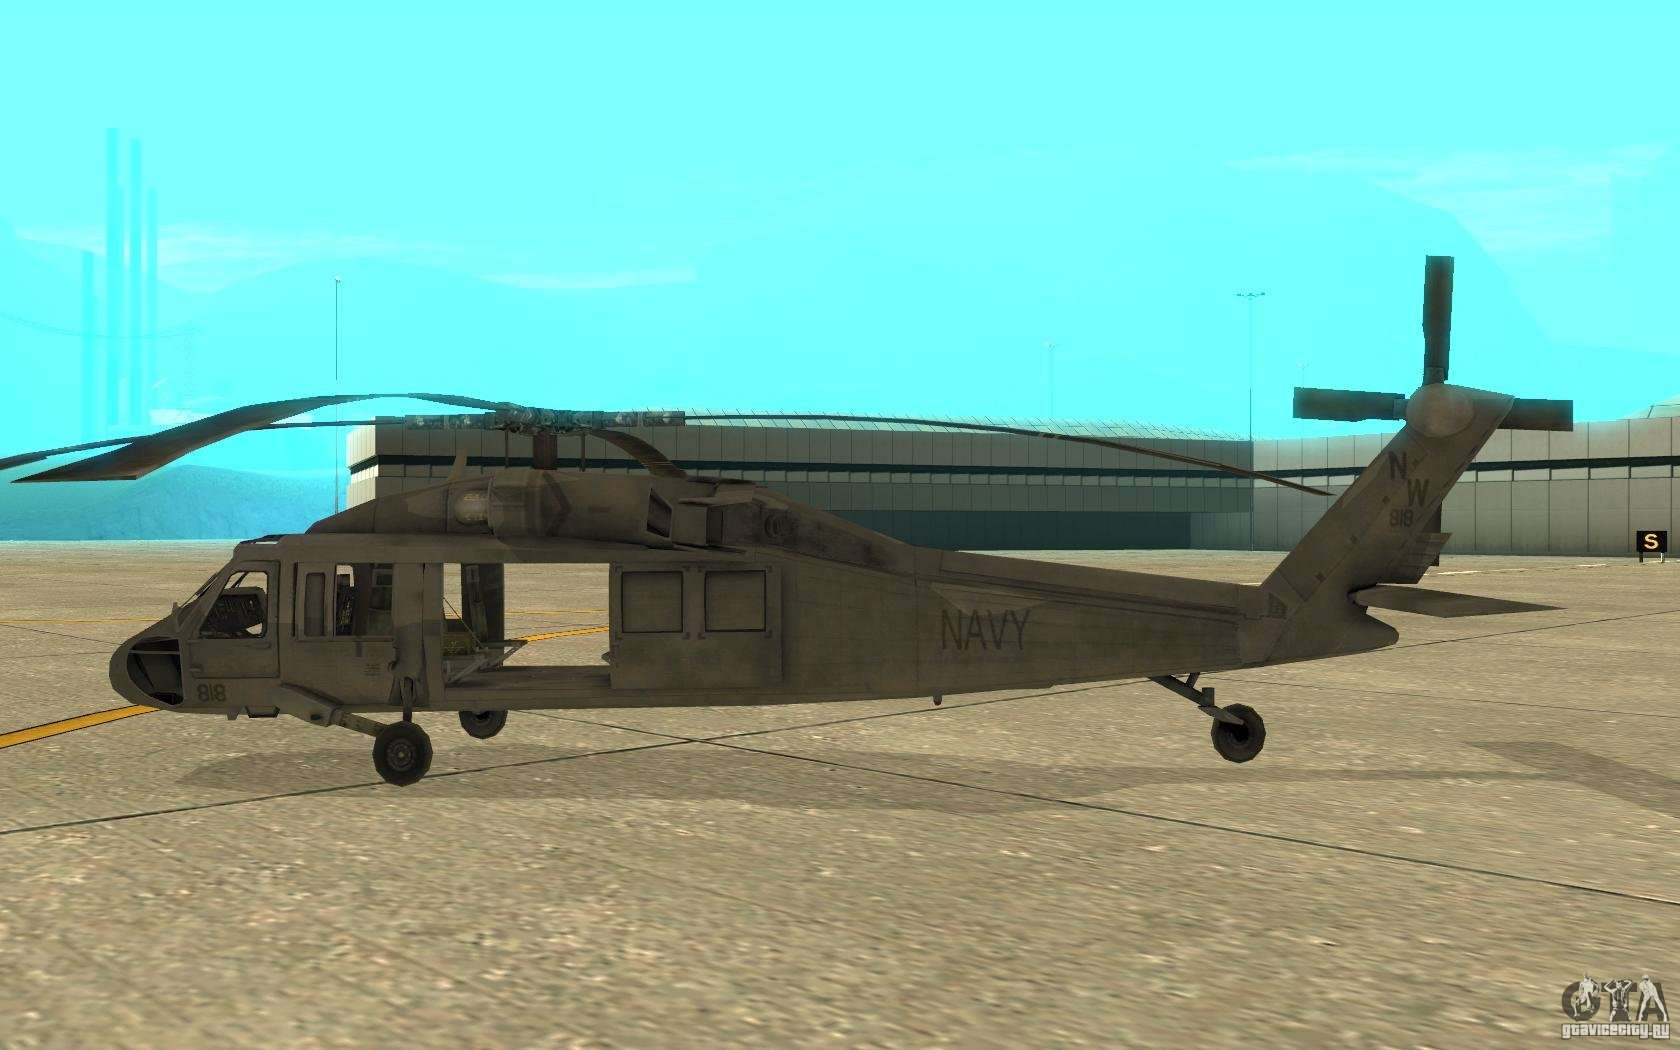 heavy lift helicopter with 5567 Uh 80 on Ip6h furthermore 26218 additionally 46464 as well On The Verge Canadas 47b Program For Mediumheavy Transport Helicopters 02390 in addition Kit aca 12703.